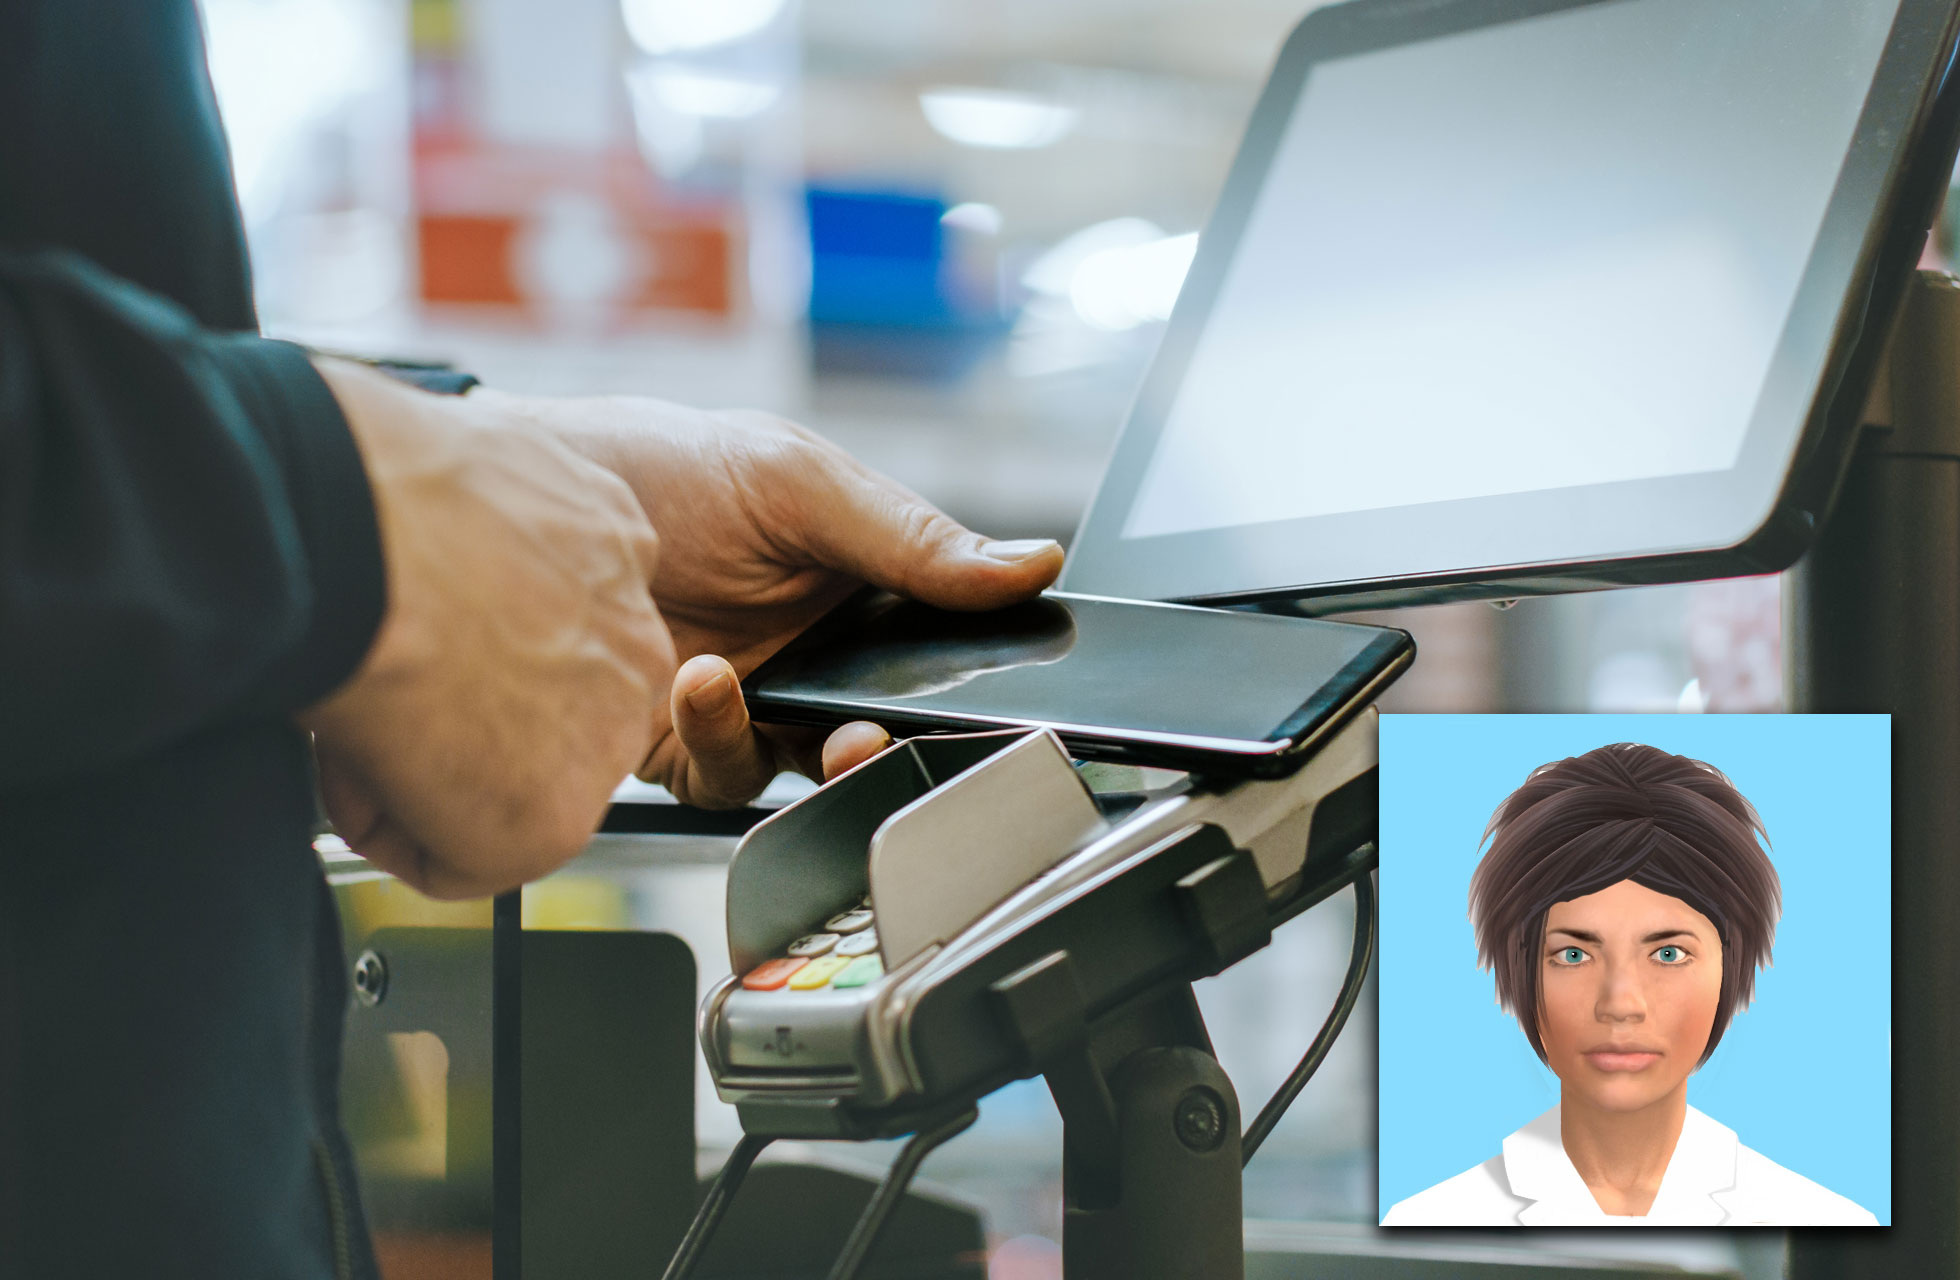 Digitised faces may reduce shoplifting risk at self-service checkouts